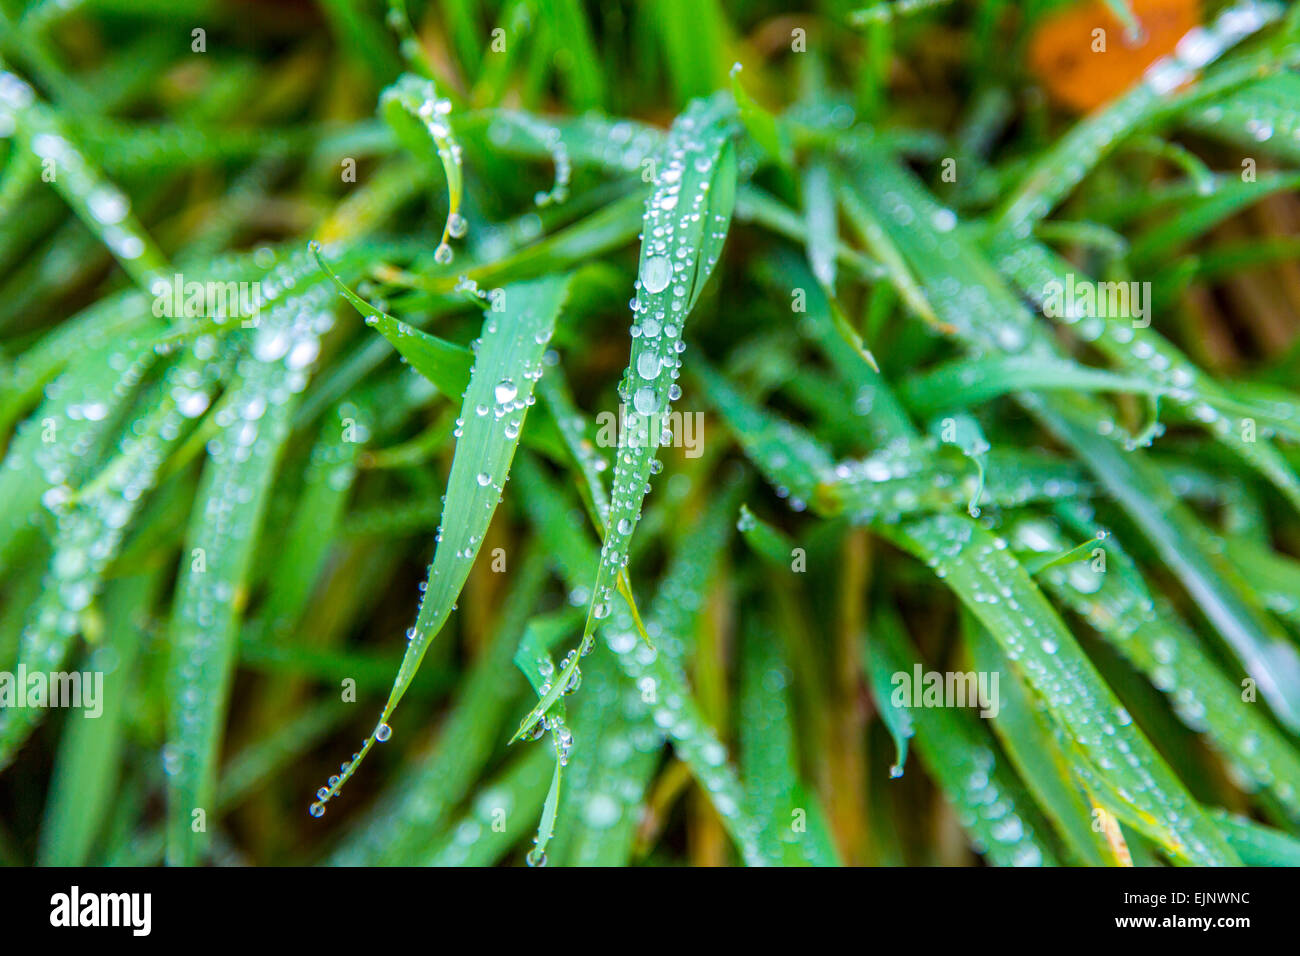 Dew drops on blades of grass - Stock Image